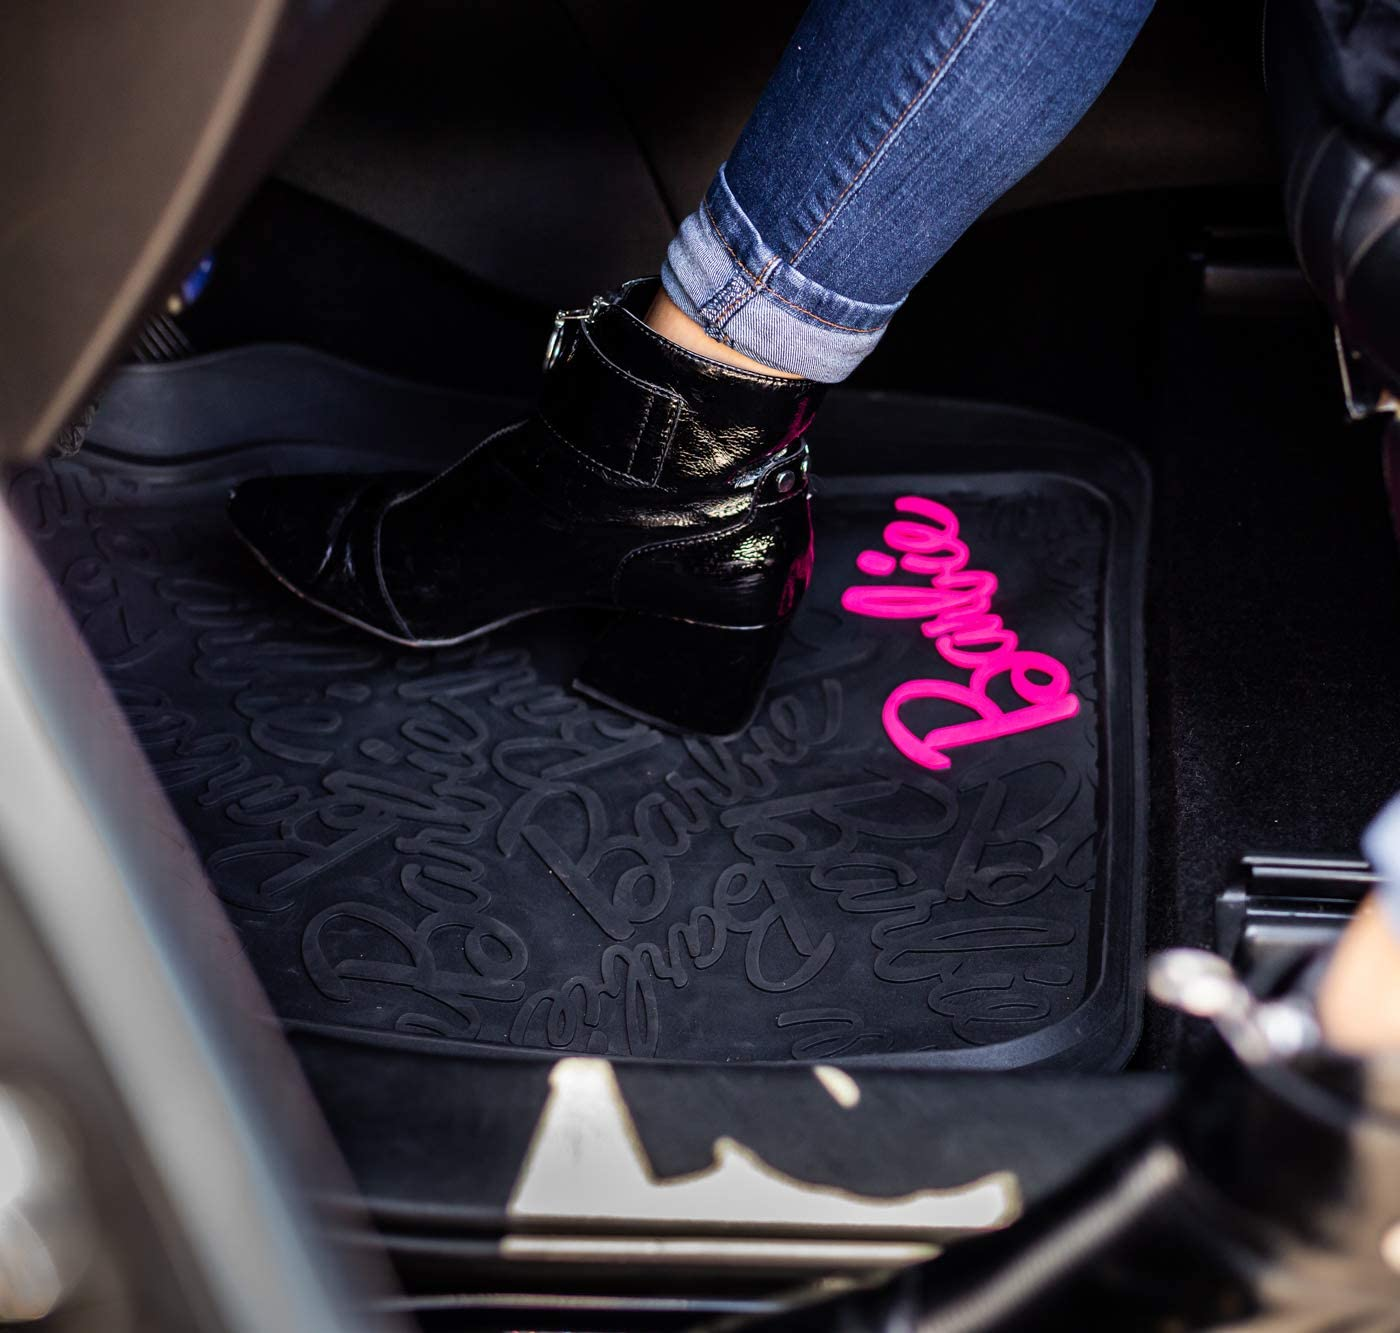 2, 1 Cars, SUVs and Truck Black seat Cover, Swarovski Crystals, Rhinestone License Plate Frame, Floor mat, All Weather Protection, Universal fit LUNNA AMA-008 Barbie Premium Deluxe Bundle